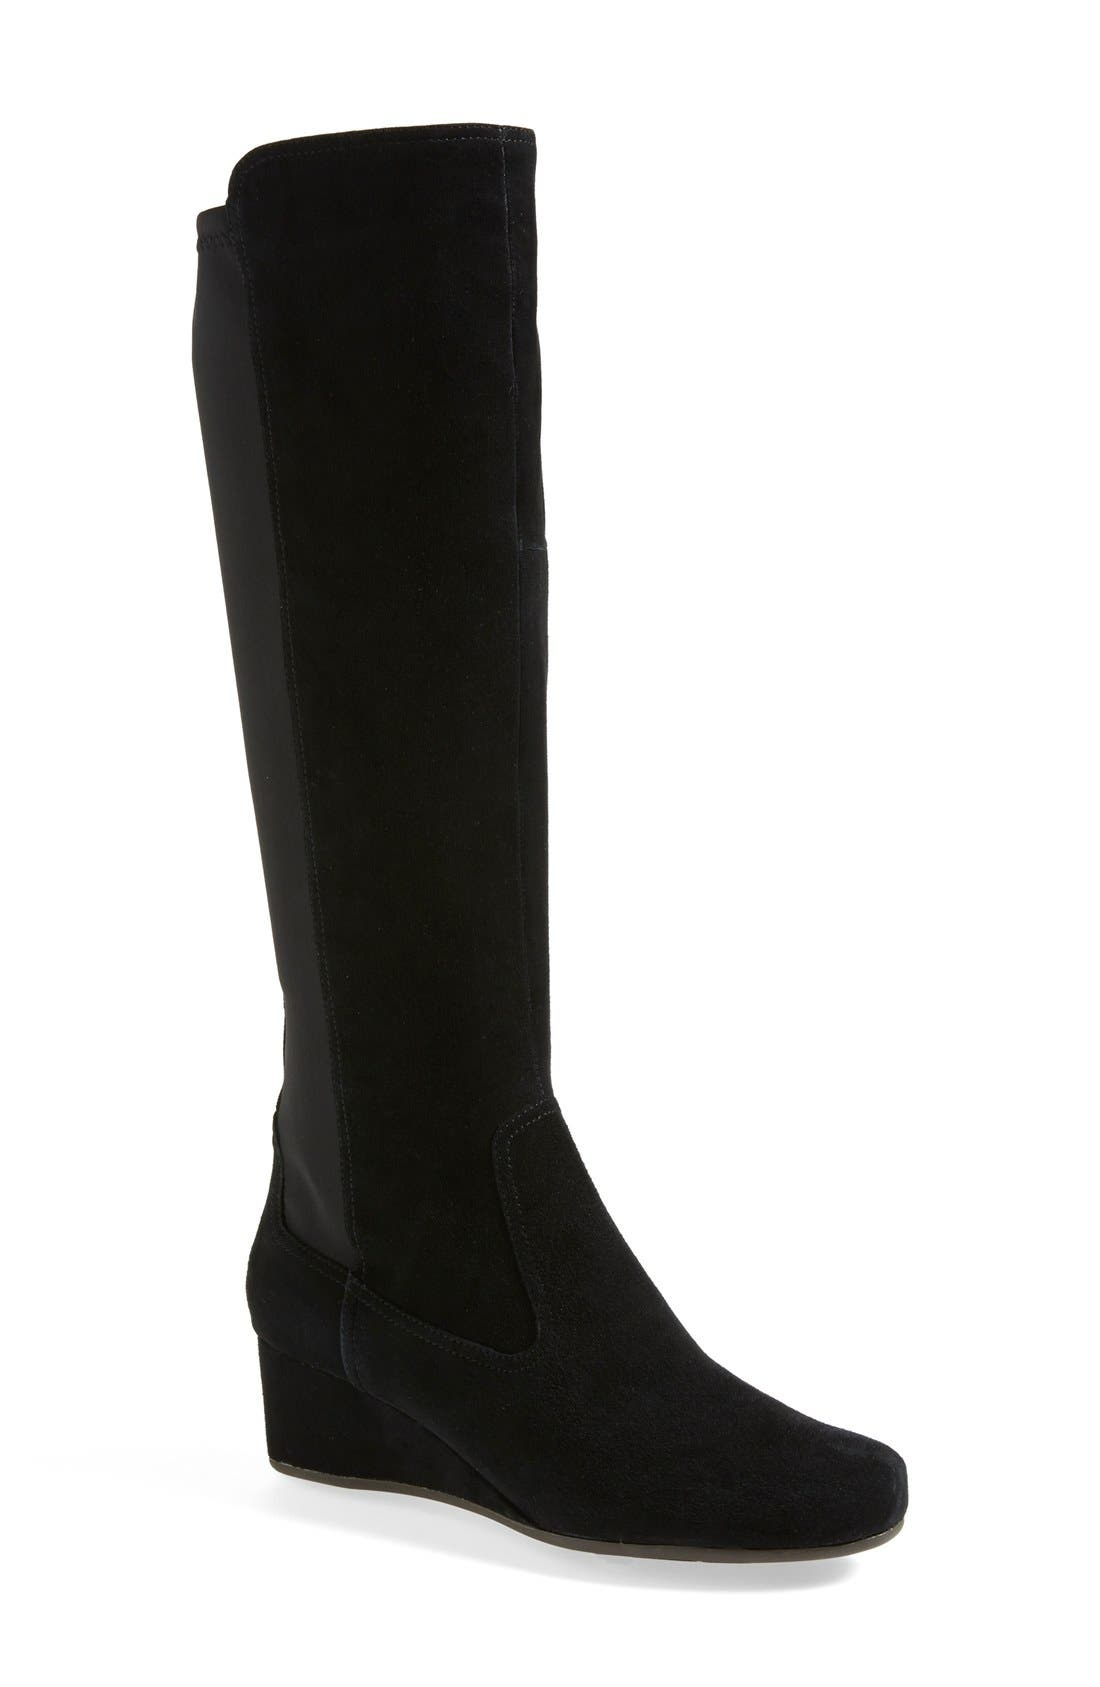 Main Image - Rockport 'Total Motion' Suede Boot (Wide Calf) (Women)